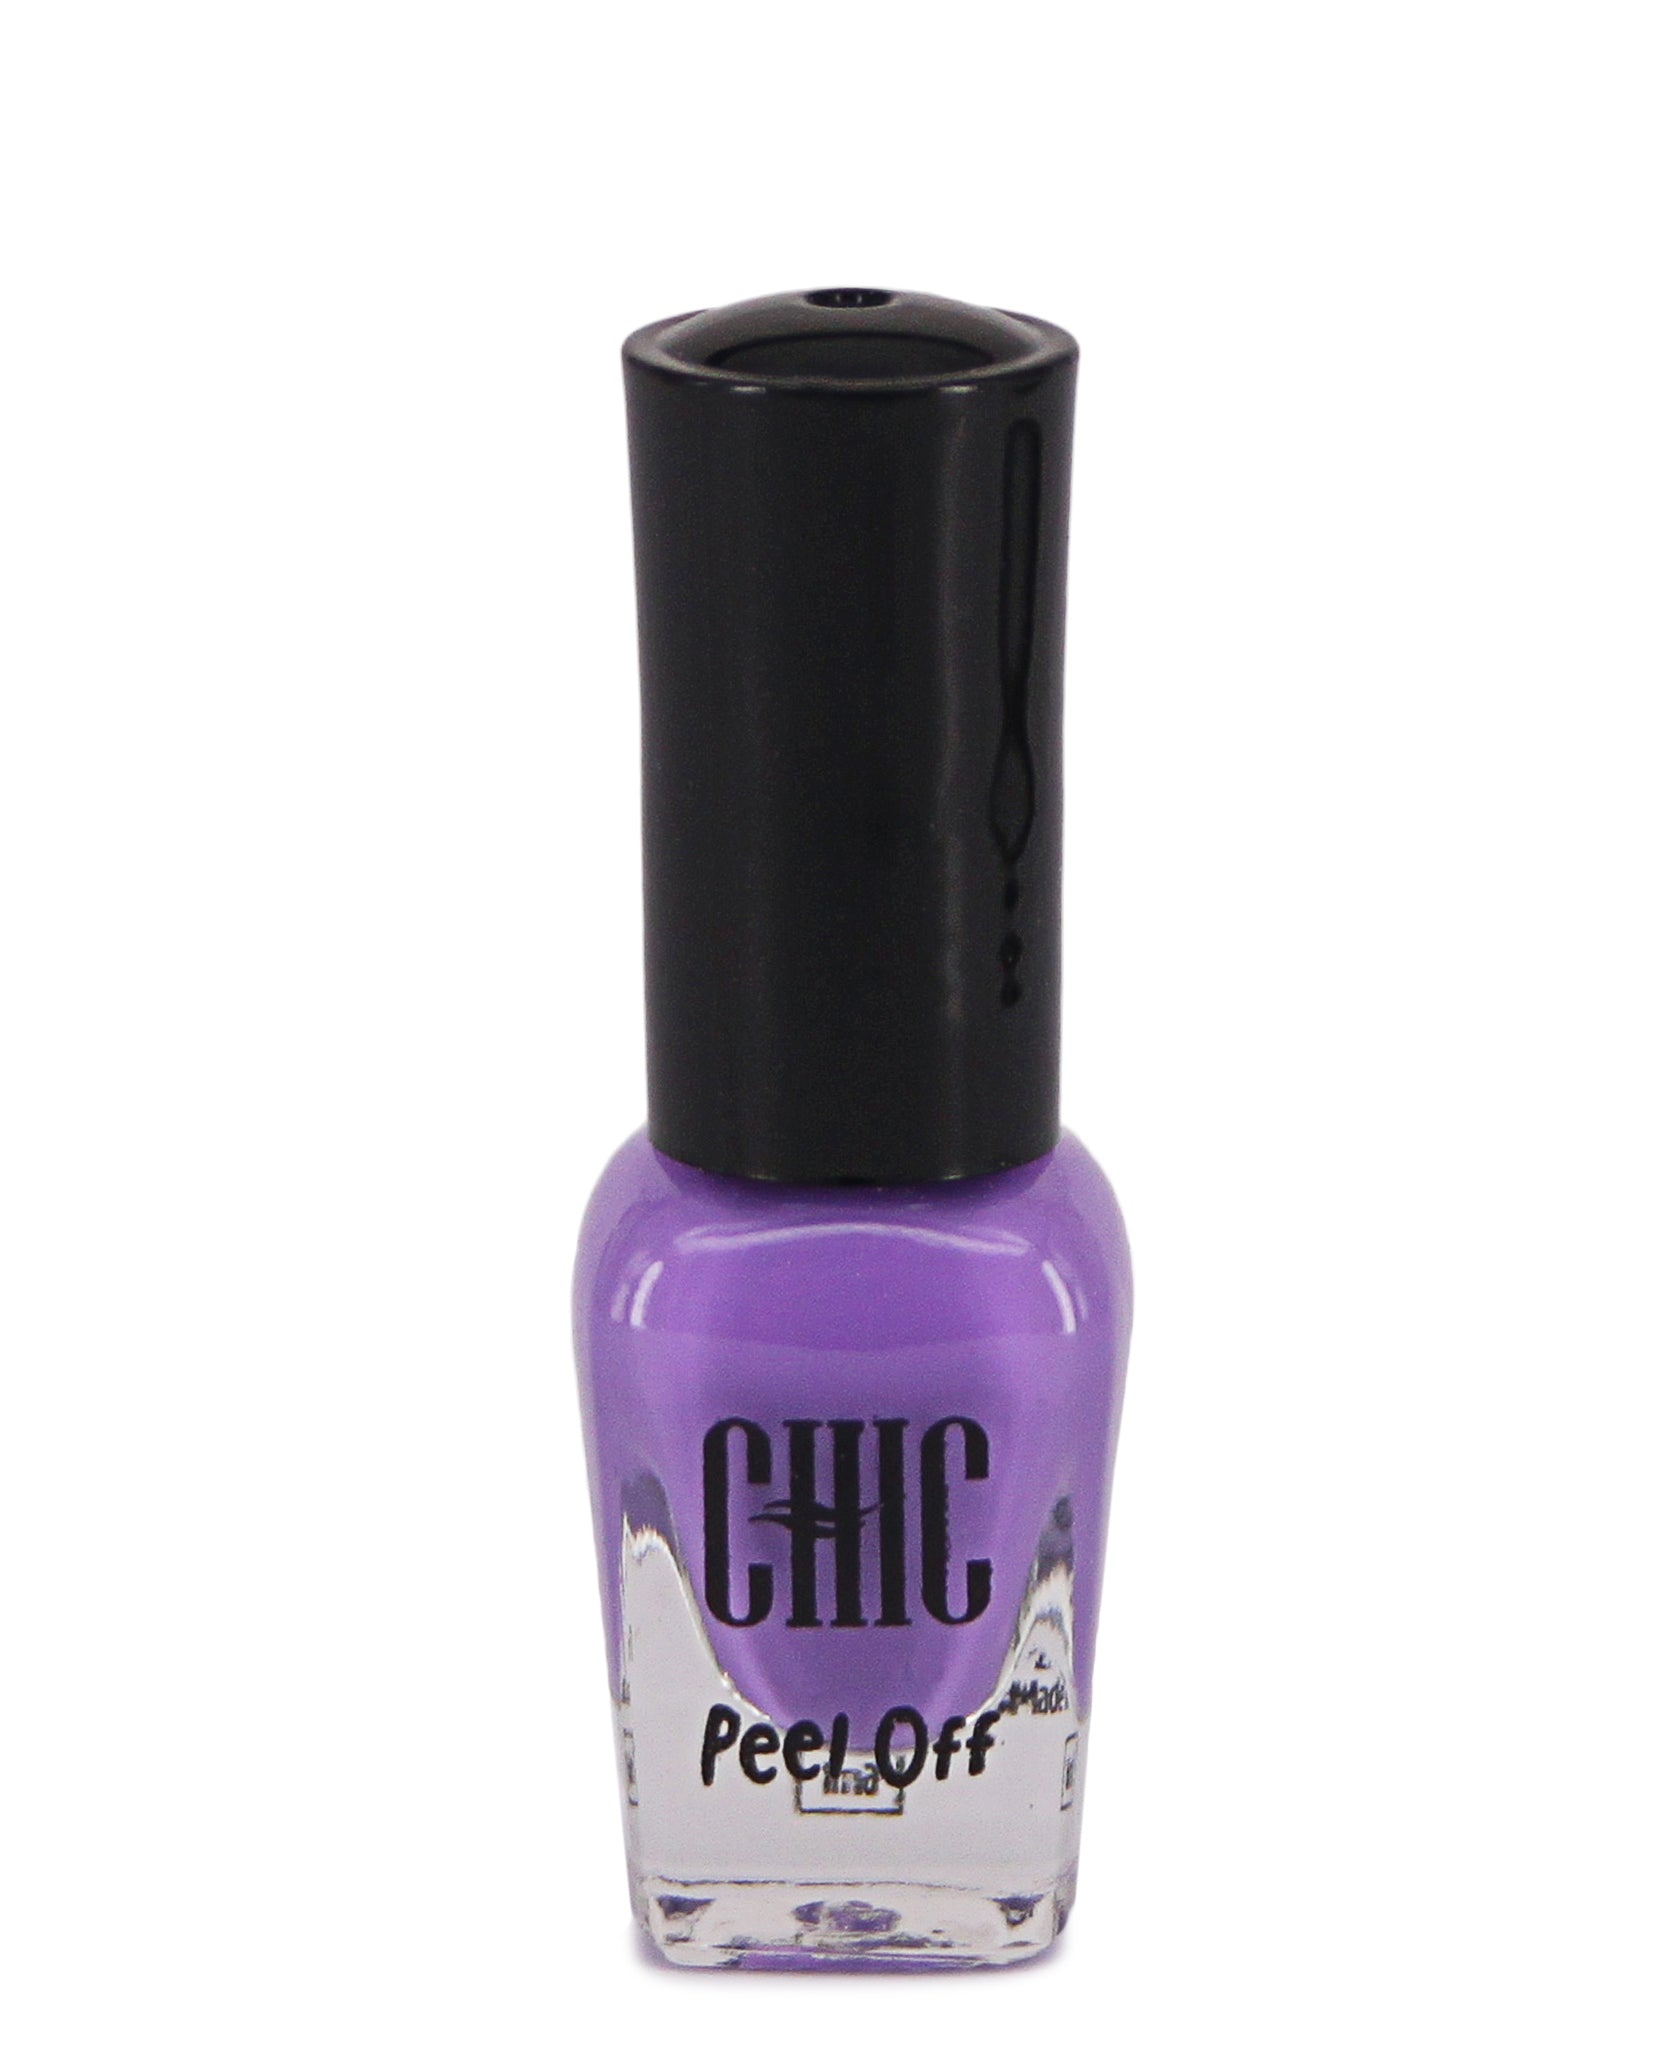 Peel-Off Nail Polish - Purple